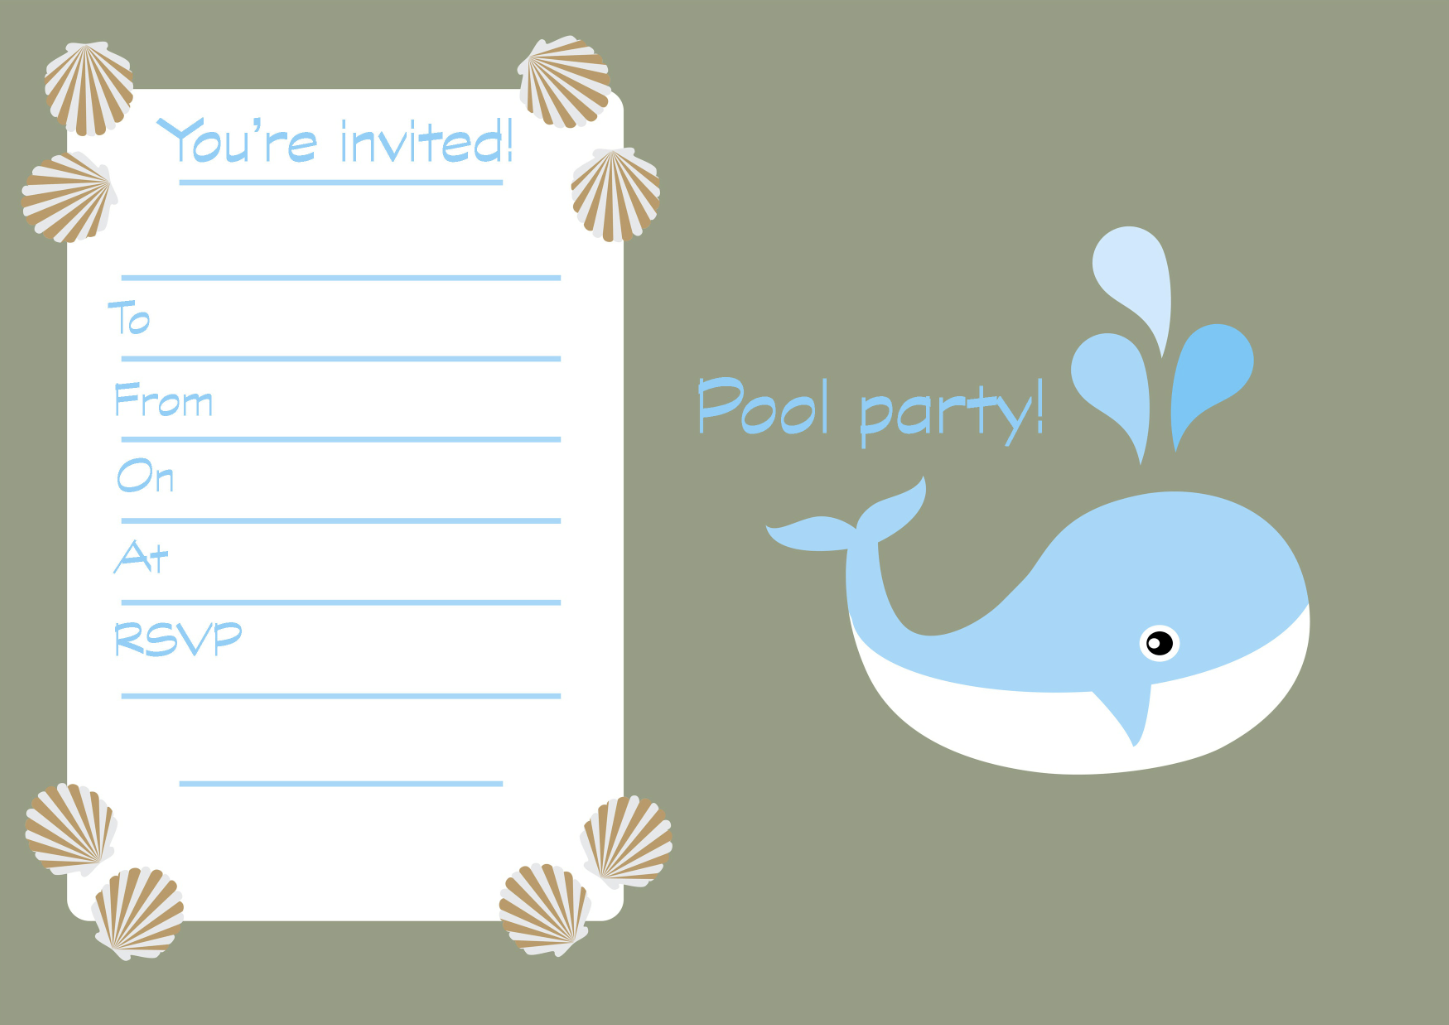 FREE Printable Childrens Birthday Party Invitations Goodtoknow - Birthday party invitation reminder